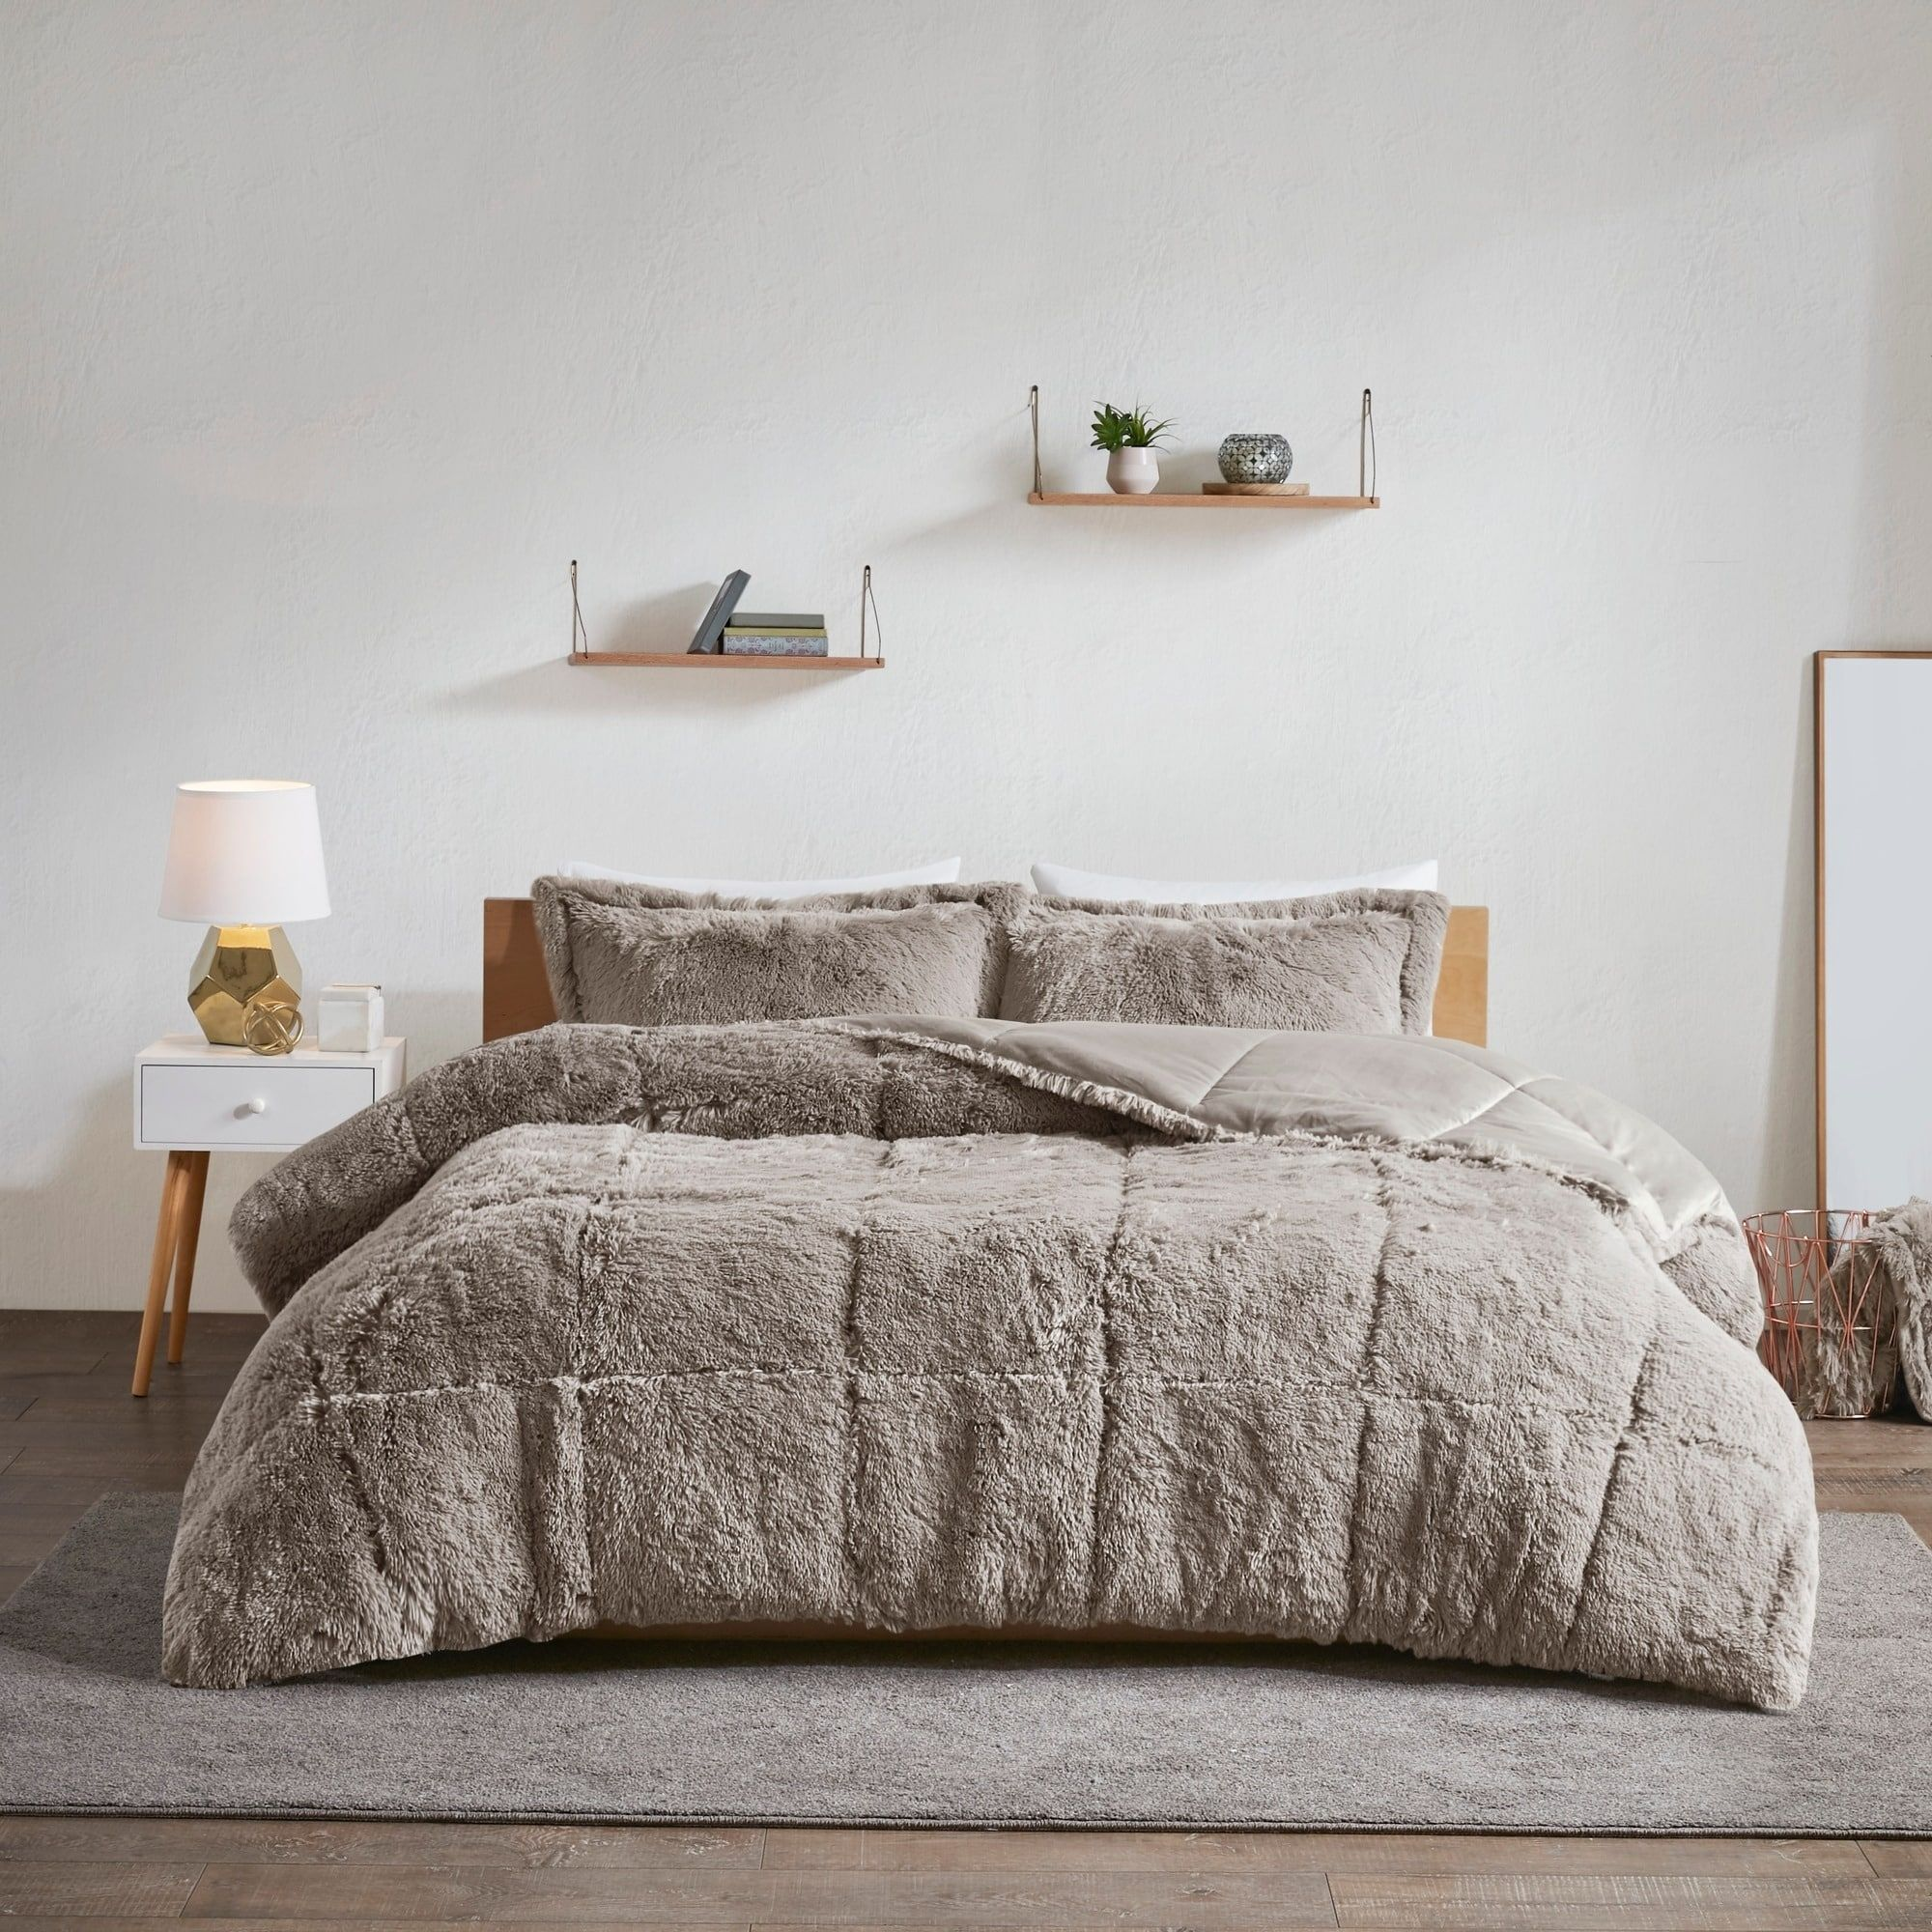 Intelligent Design Leena Shaggy Faux Fur King Cal King Size Comforter Set In Grey As Is Item King Cal King Grey Gray Id Intelligent Fur Comforter